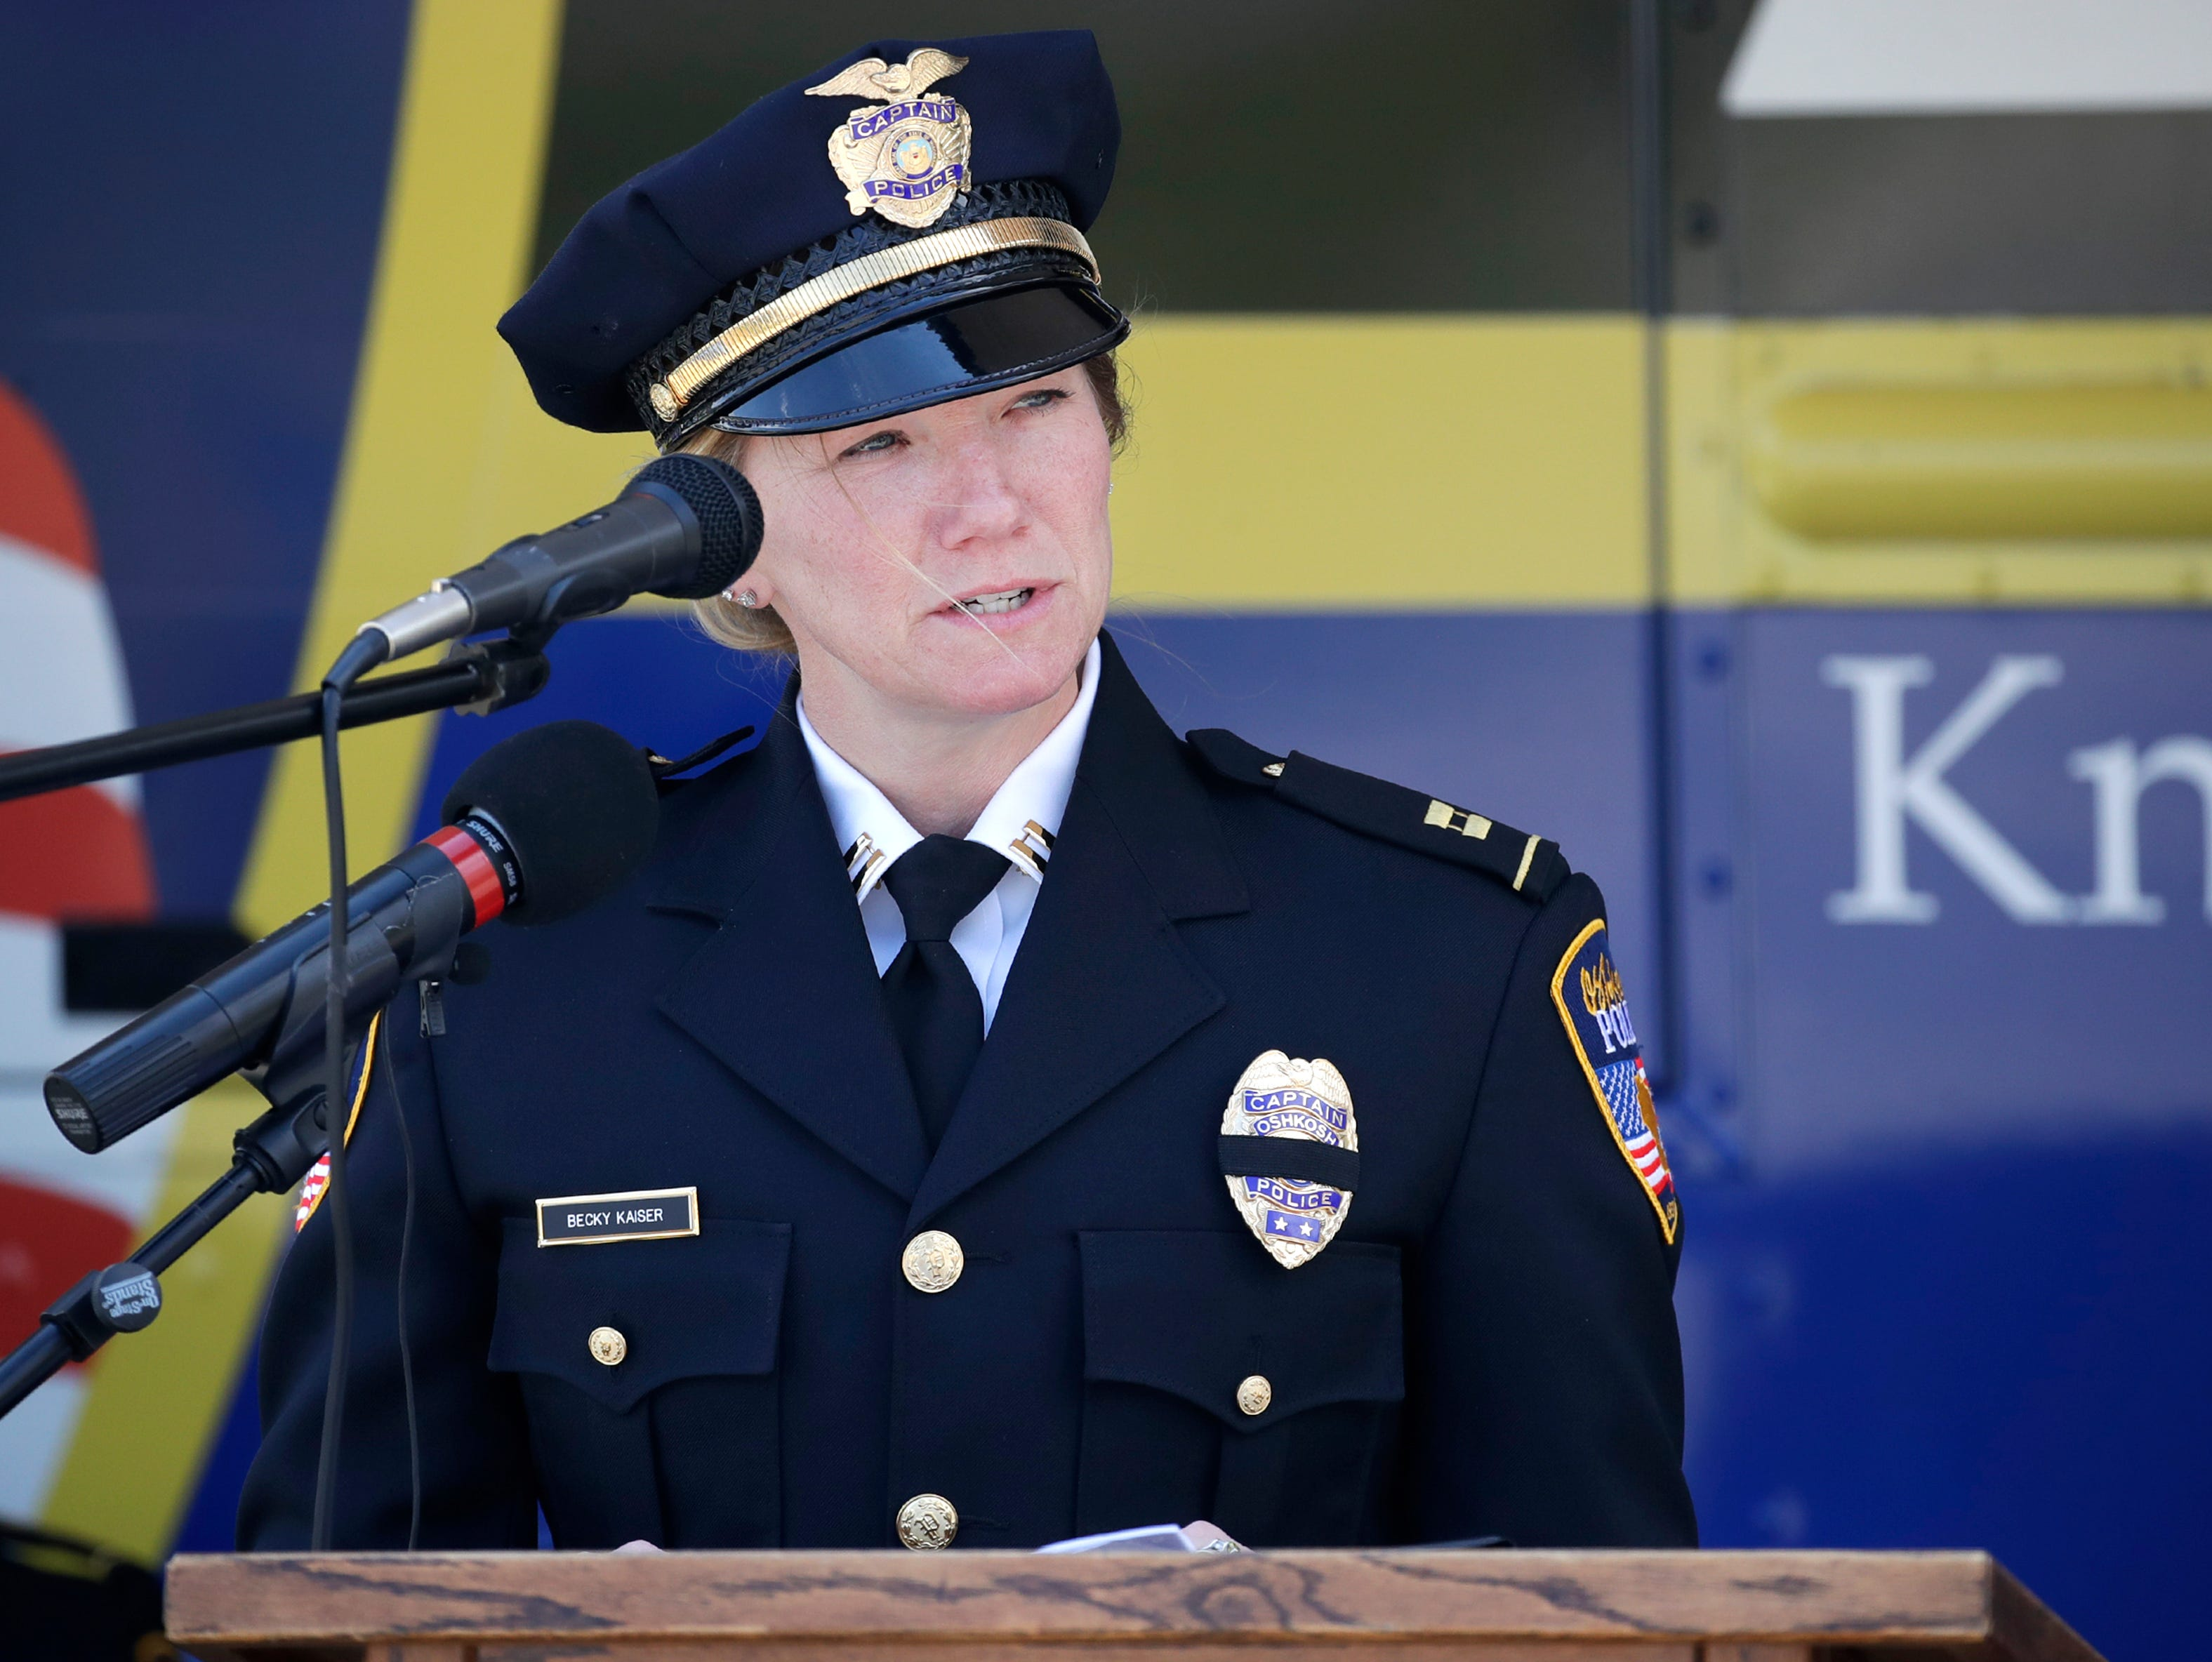 Captain Becky Kaiser with the Oshkosh Police Department welcomes the community to their Law Enforcement Memorial Ceremony Wednesday, May 15, 2019, at the Oshkosh Police Department in Oshkosh, Wis. Danny Damiani/USA TODAY NETWORK-Wisconsin